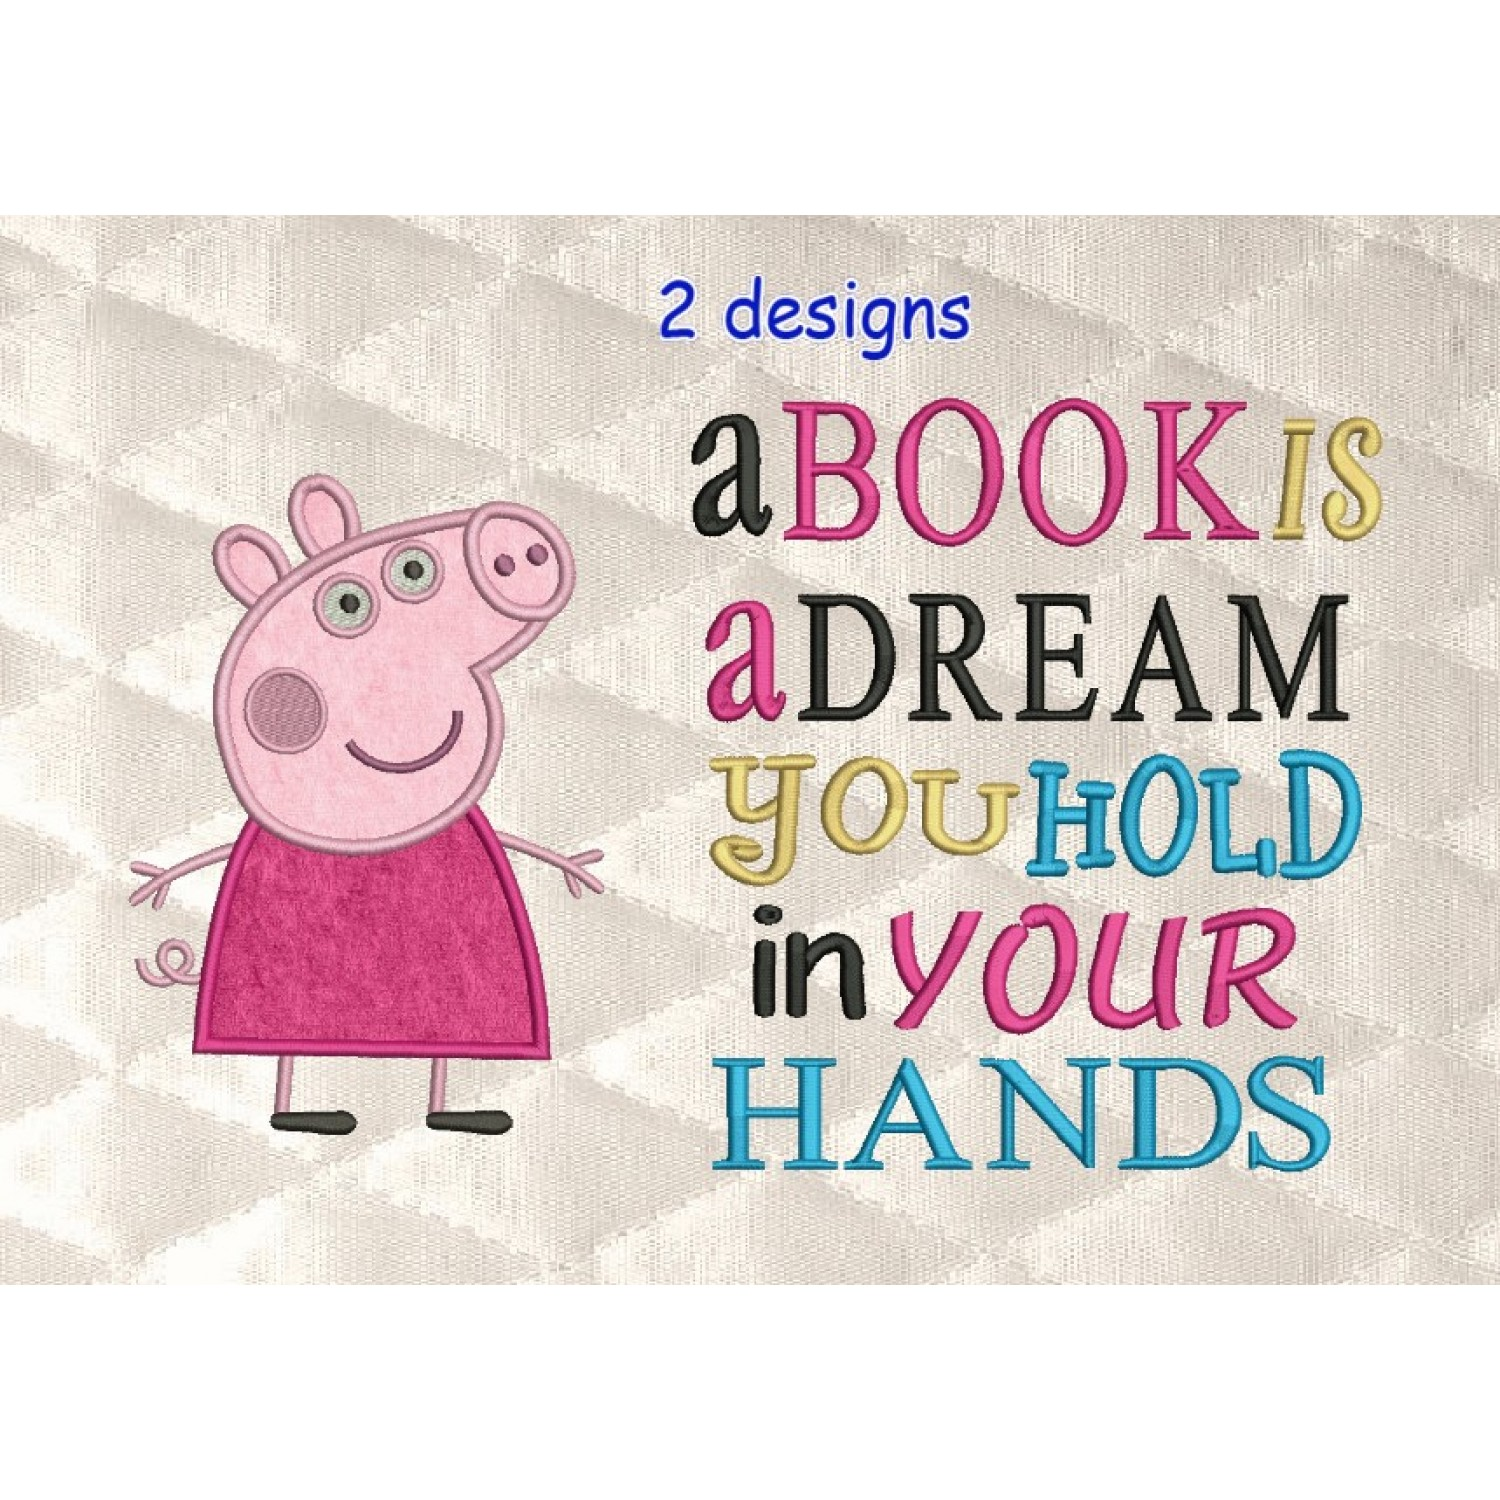 Peppa Pig applique with a book is a dream 2 designs 3 sizes